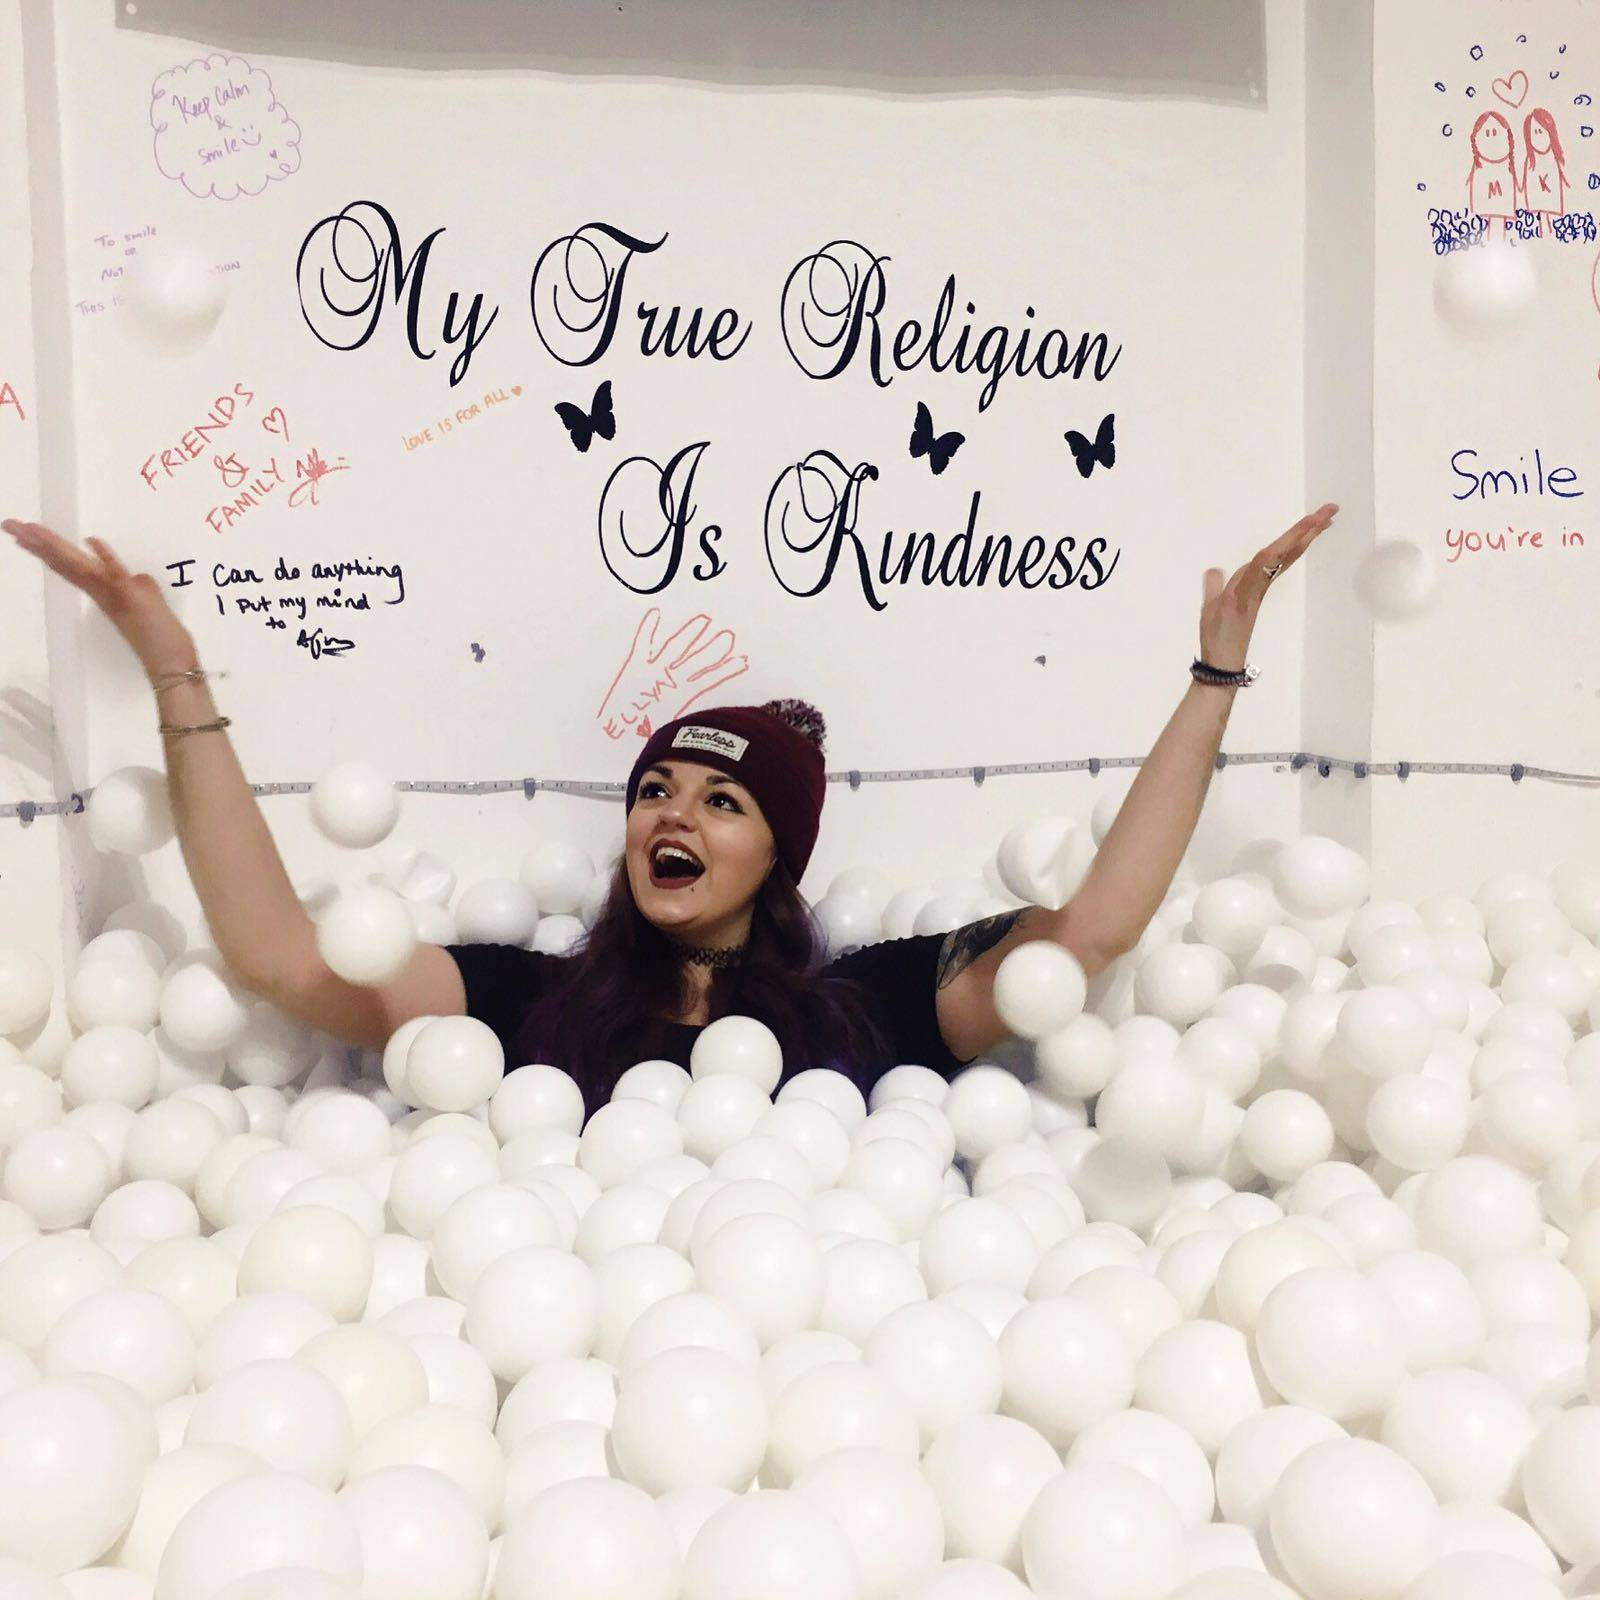 White Ball Pool Museum of Happiness